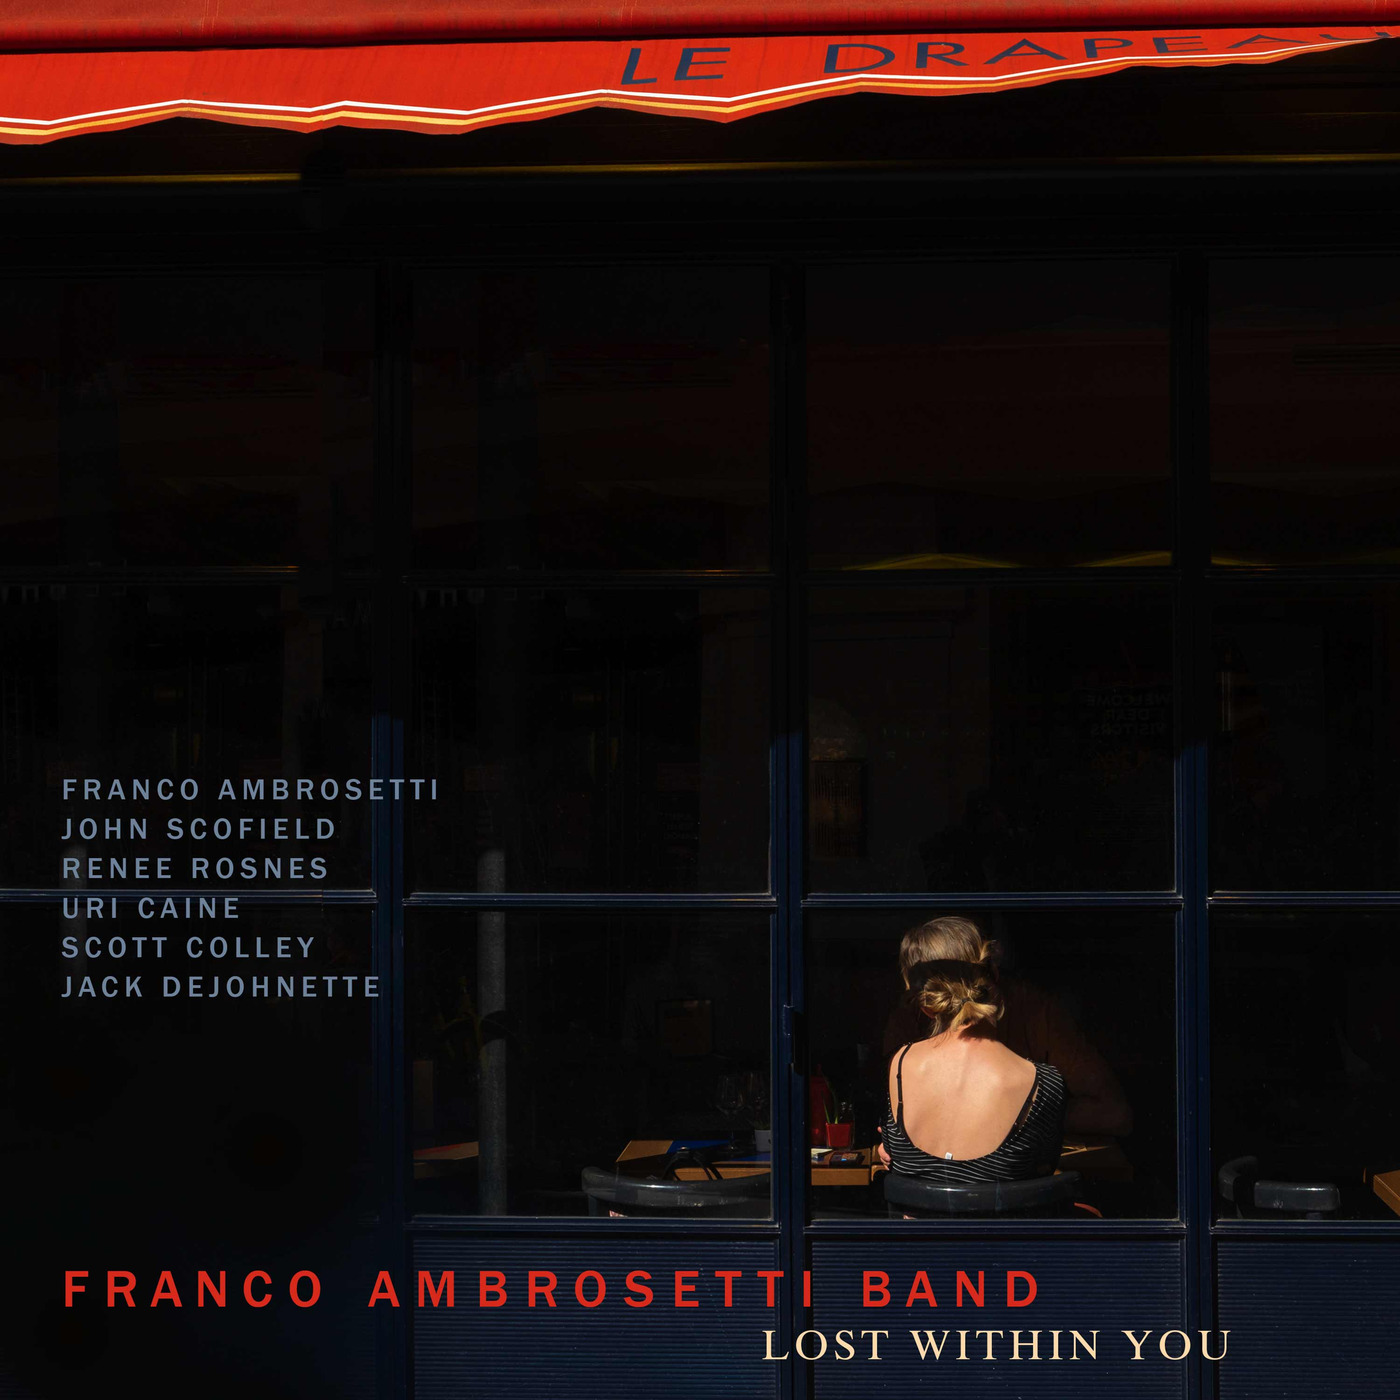 Franco Ambrosetti Band - Lost Within You